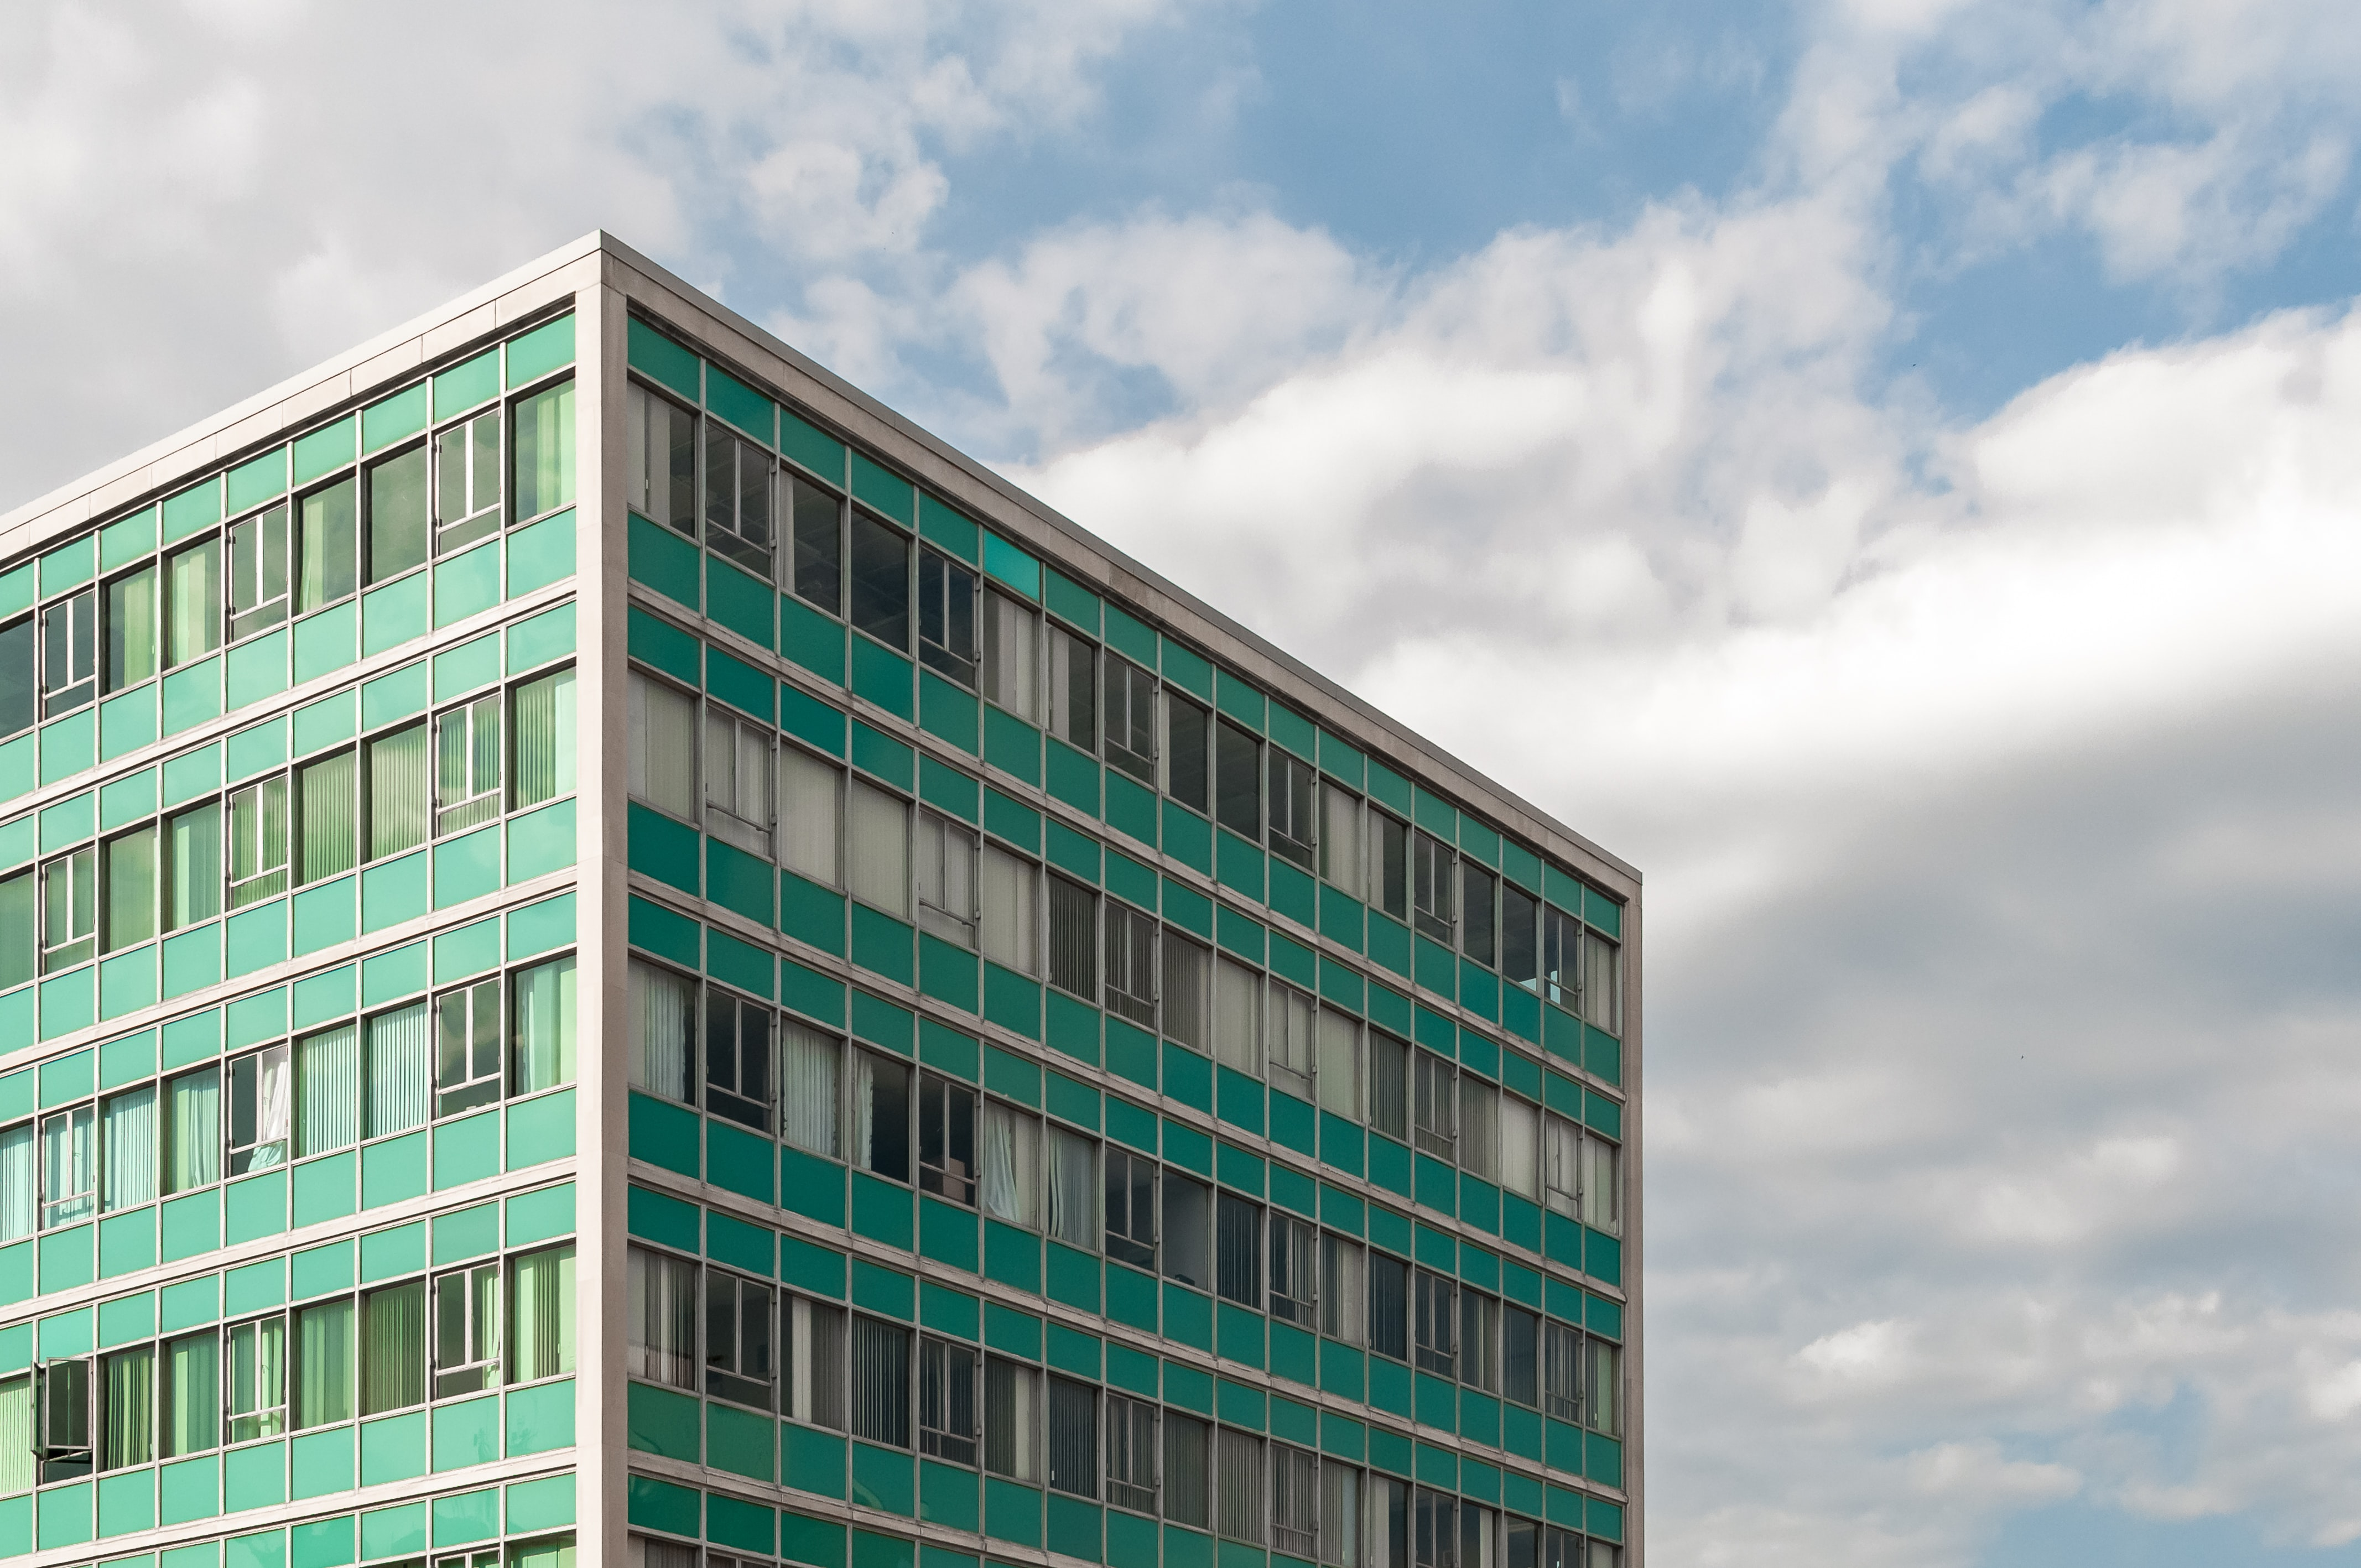 green and white concrete building